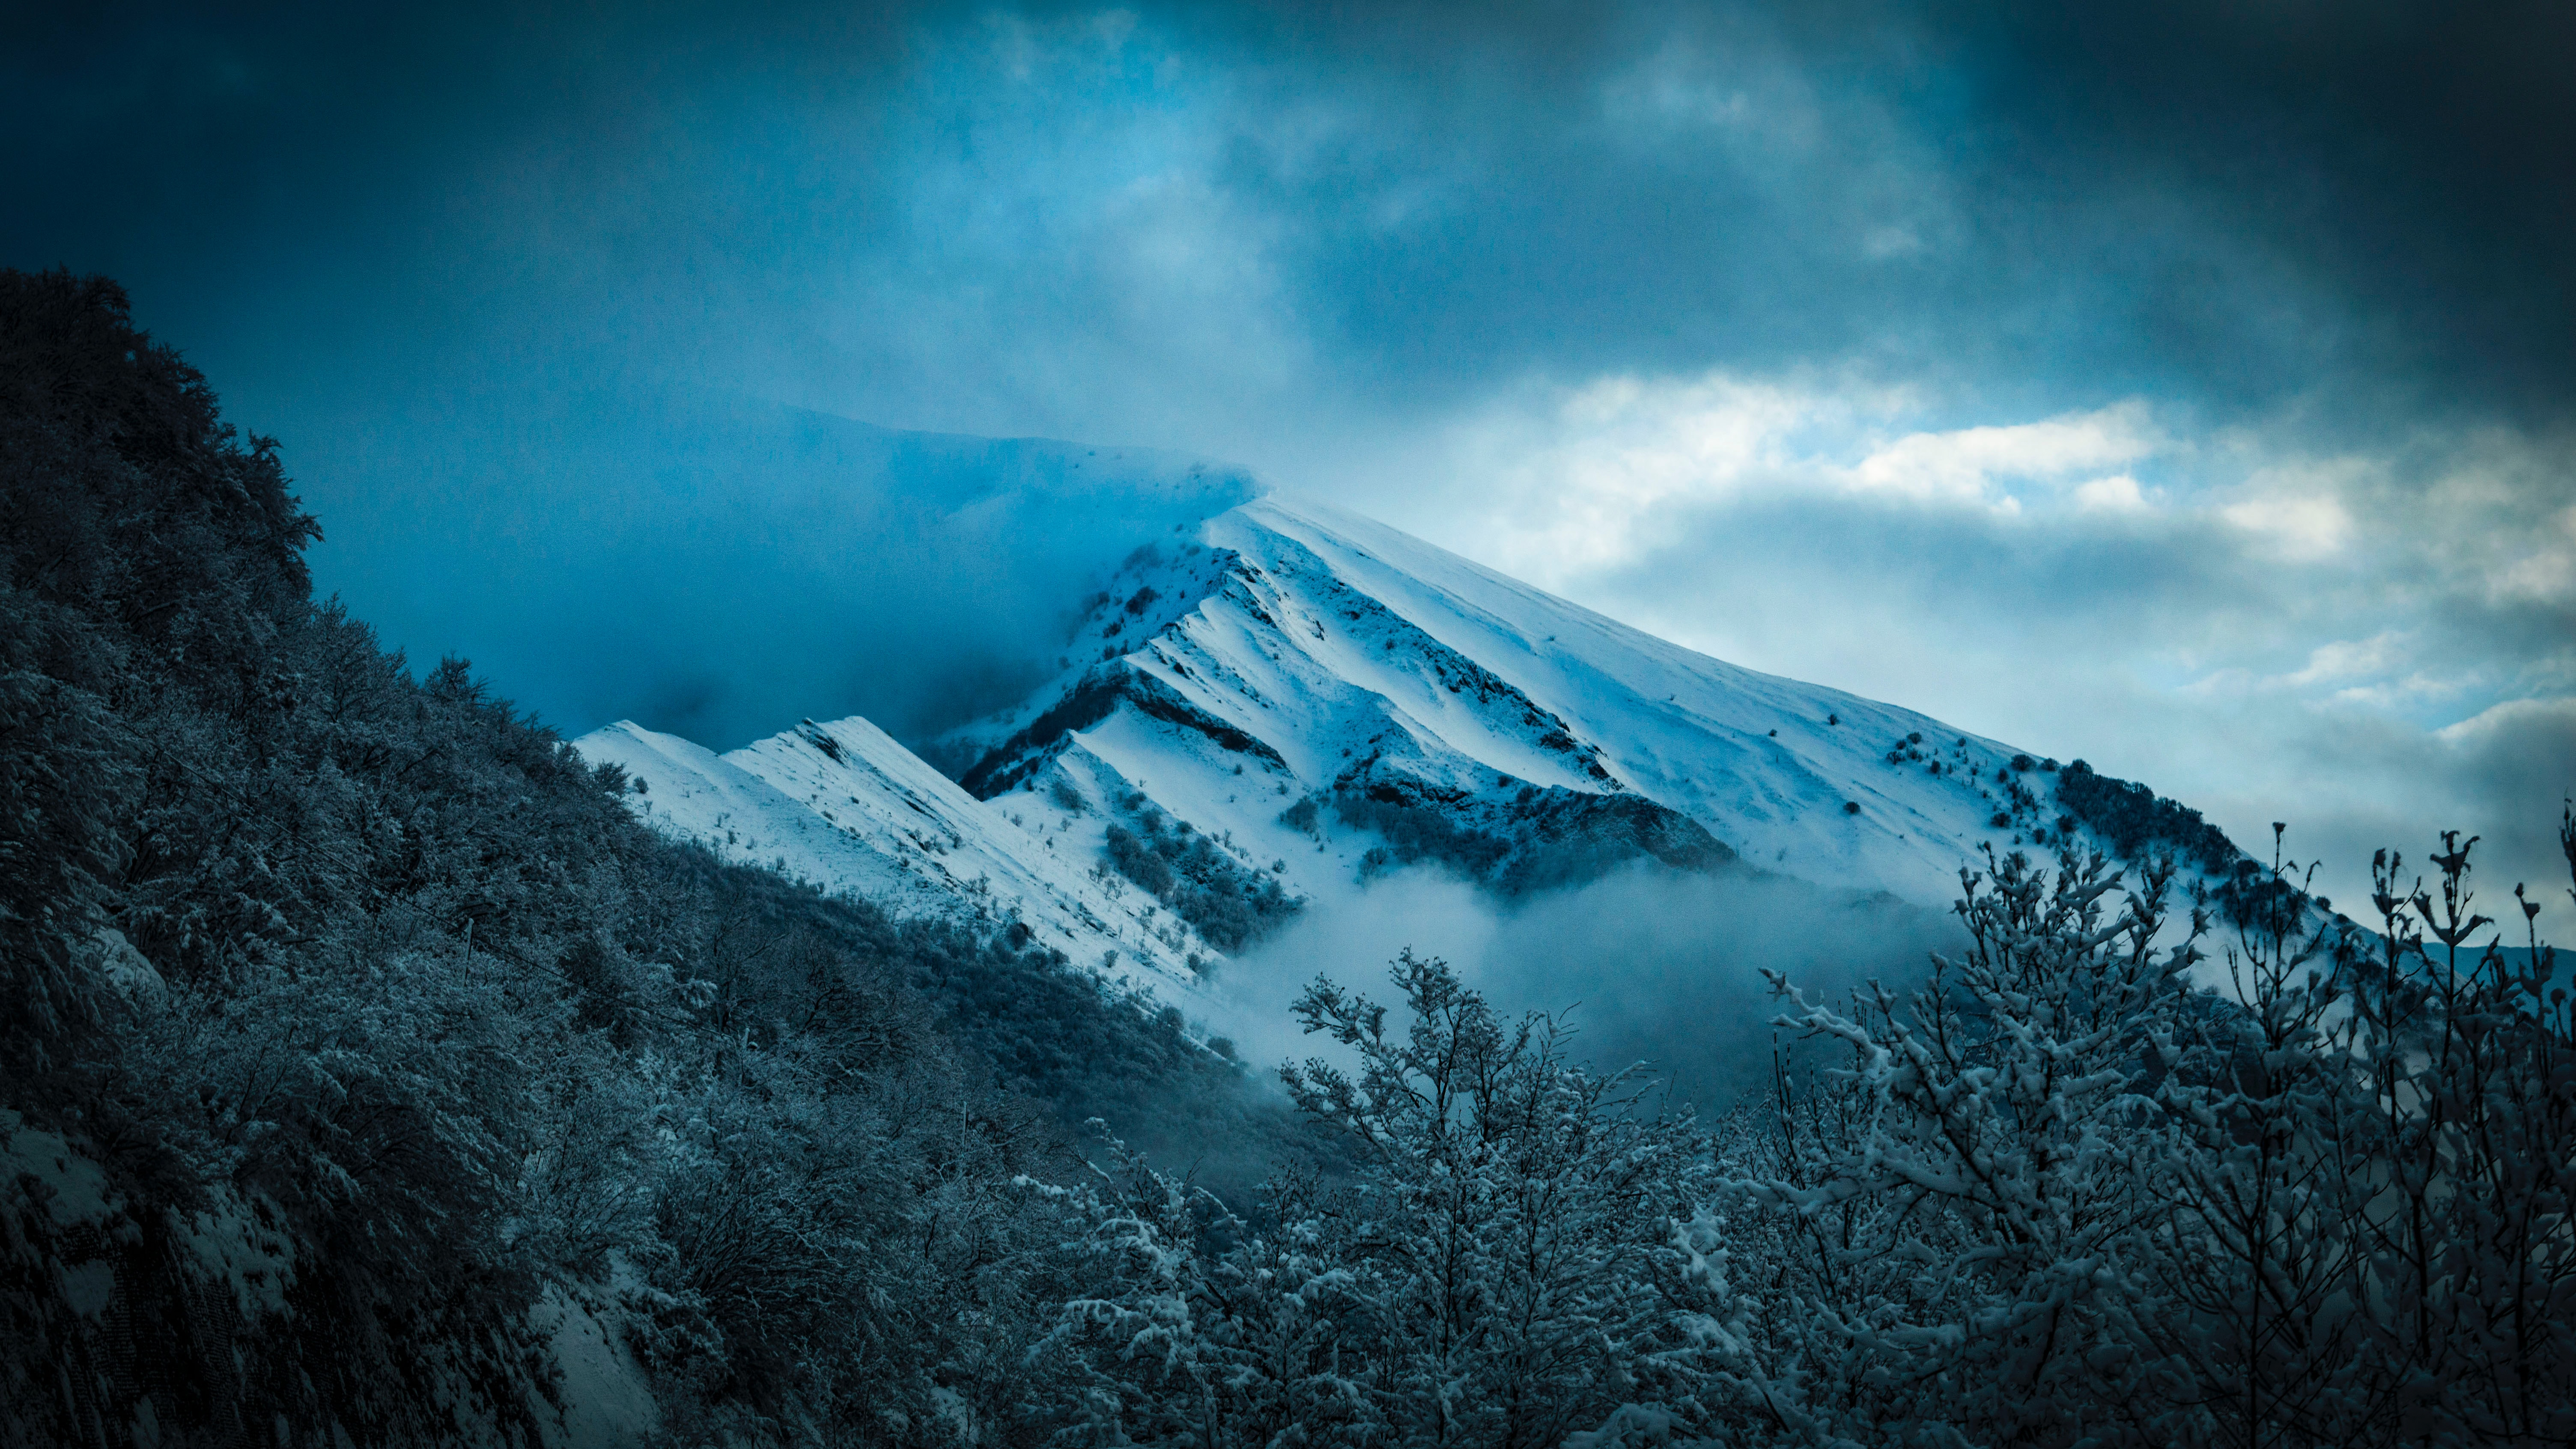 Scenic view of snowy mountain photo